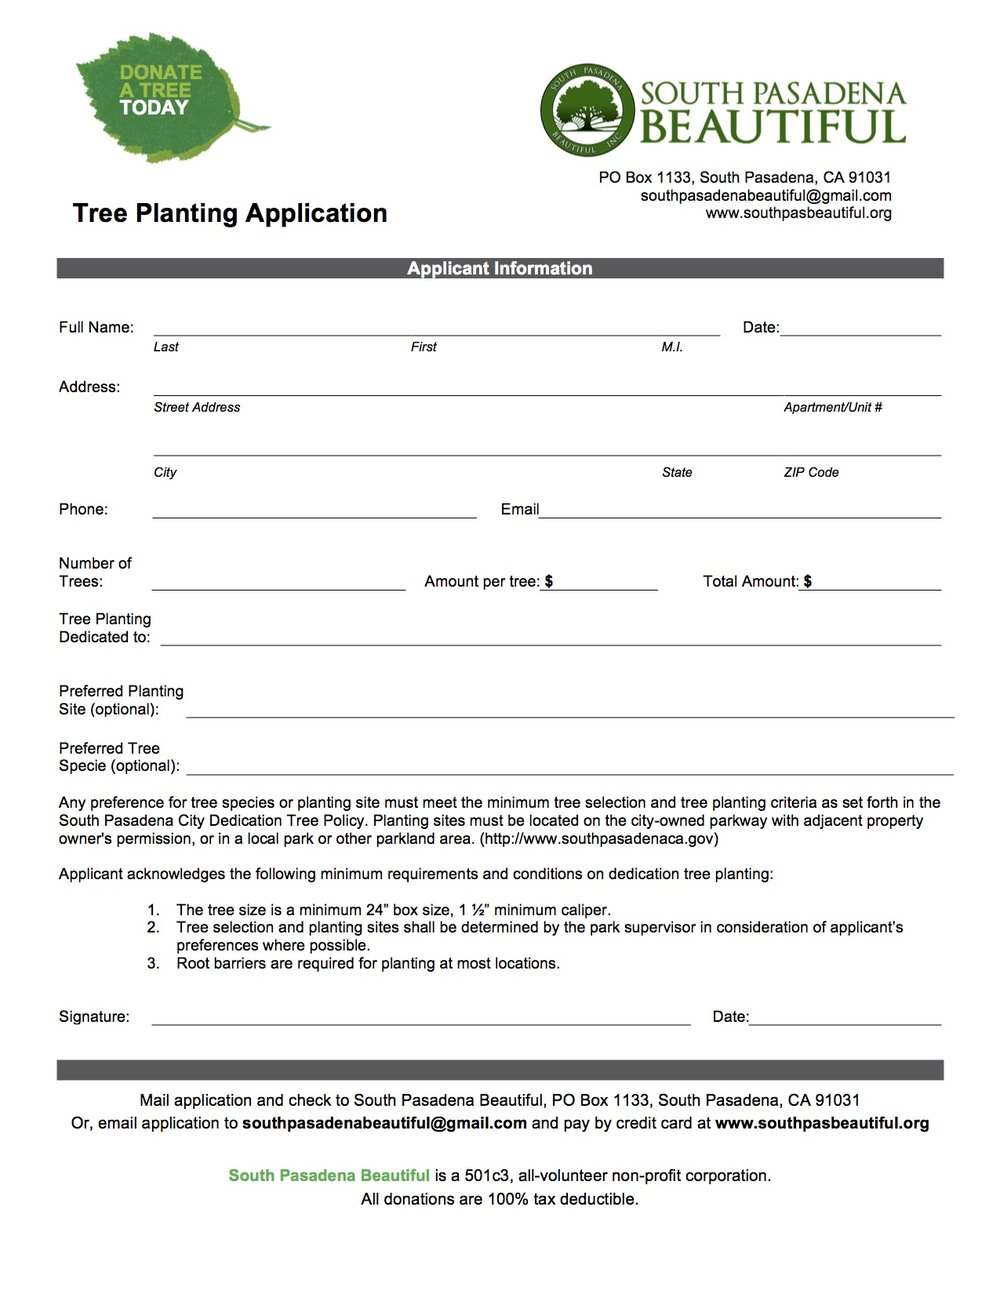 SPB Tree Planting Final Application copy.jpg